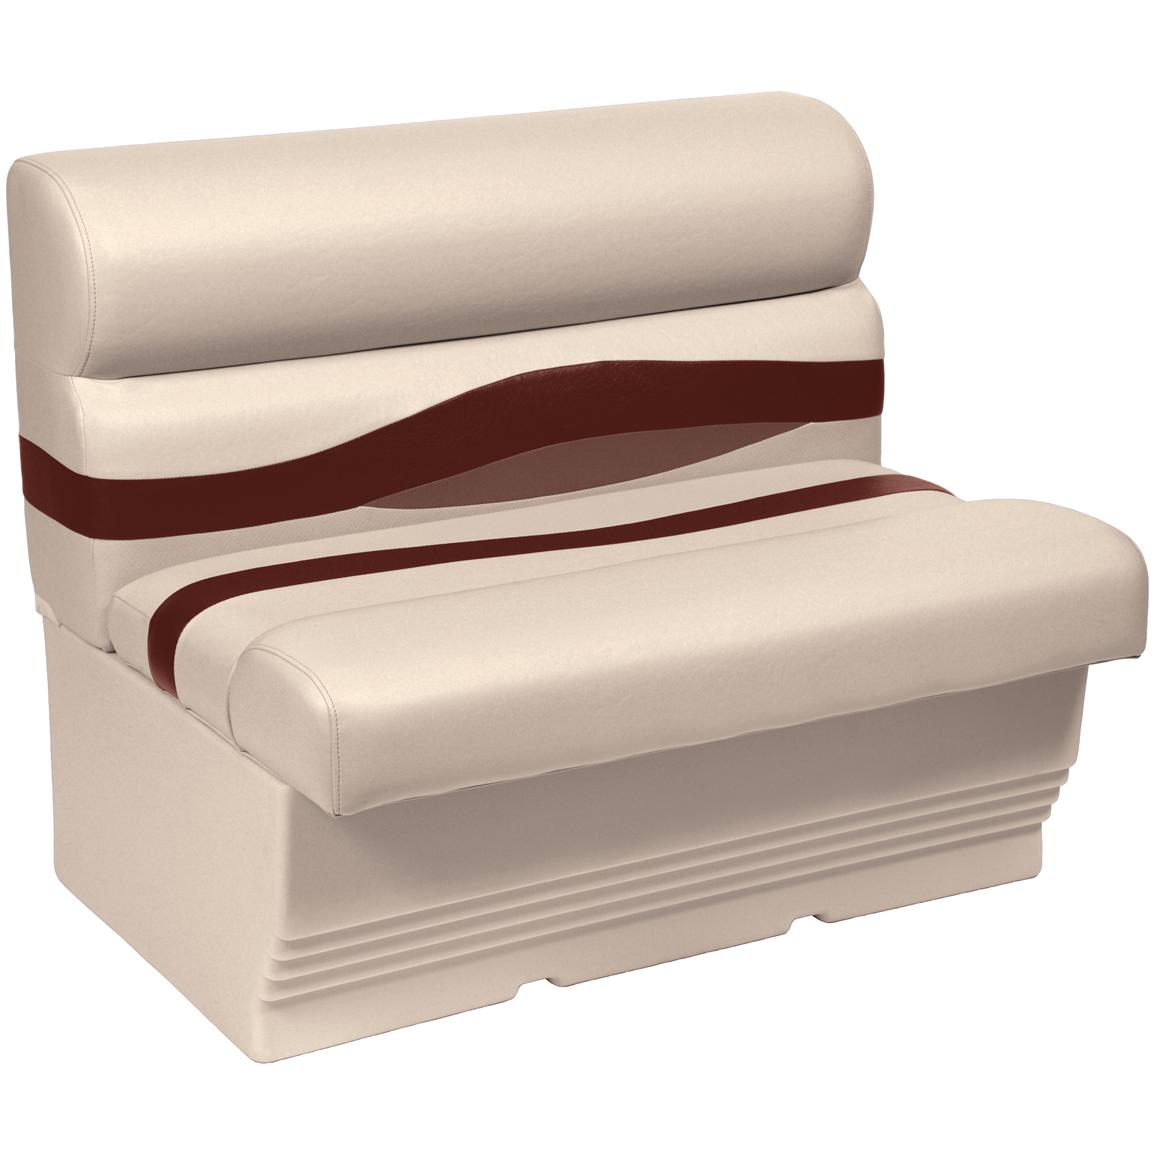 Wise® Premier 1100 Series 36 inch Pontoon Bench Seat, Color C